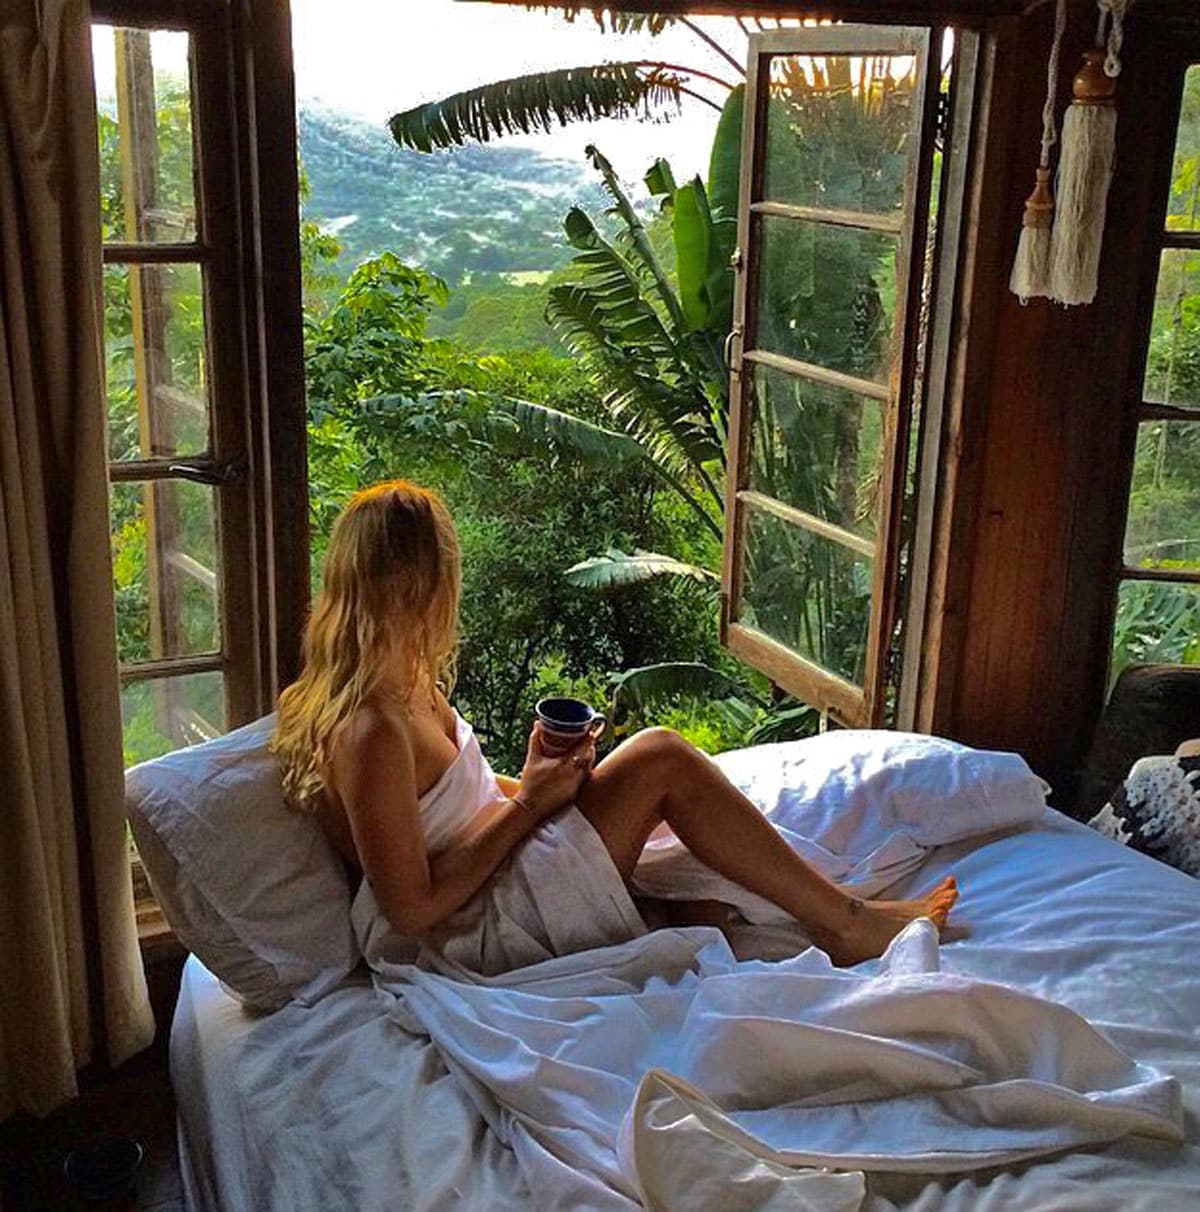 I wake up in the morning surrounded by the tranquility of the wild jungle rainforest. I am in bliss.